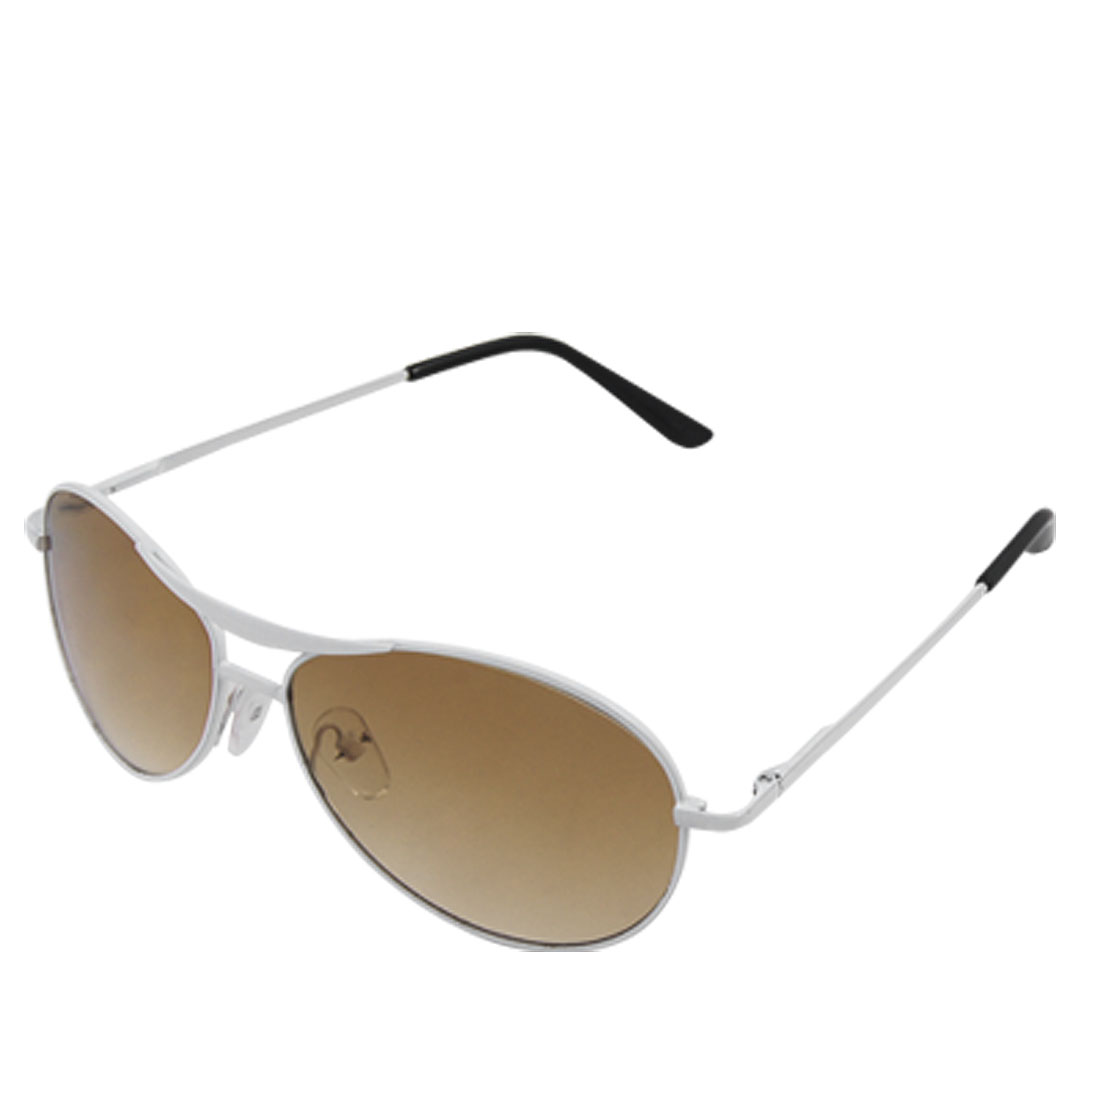 Oval Lens Metal White Full Frame Doule Bridge Child Sunglasses Eyewear